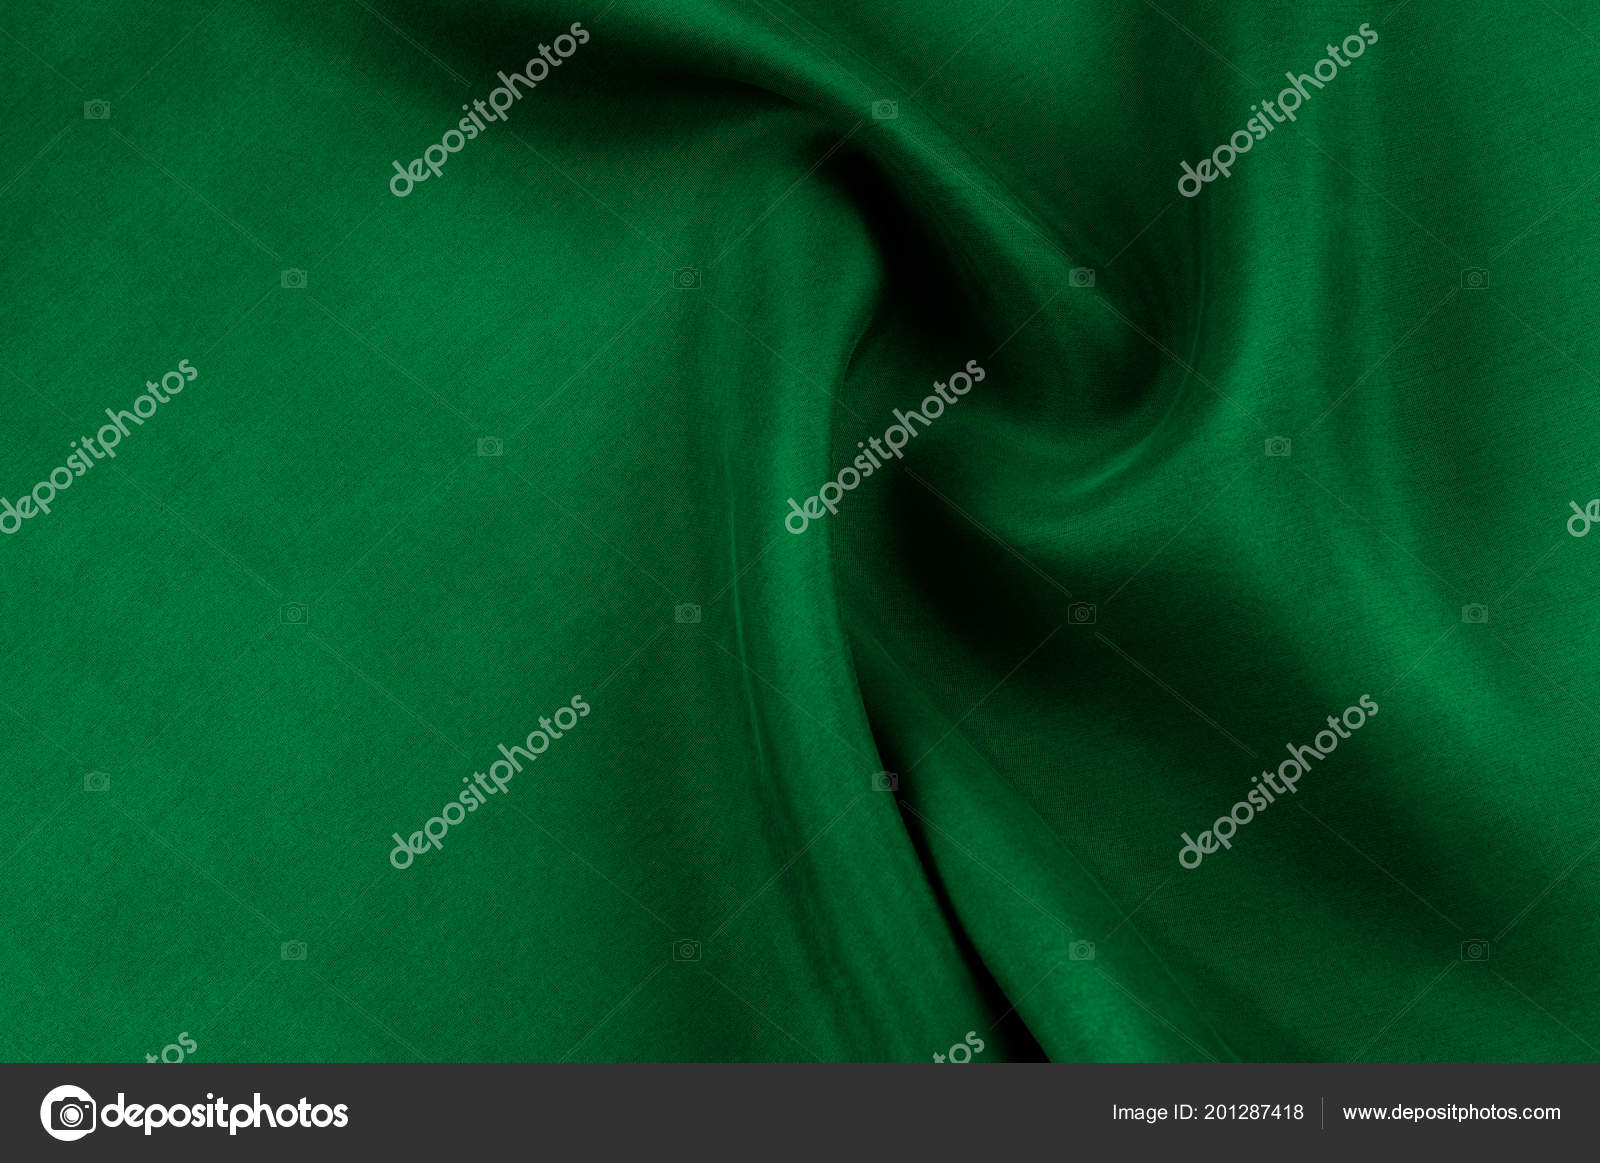 background texture pattern thick thick silk fabric green satin